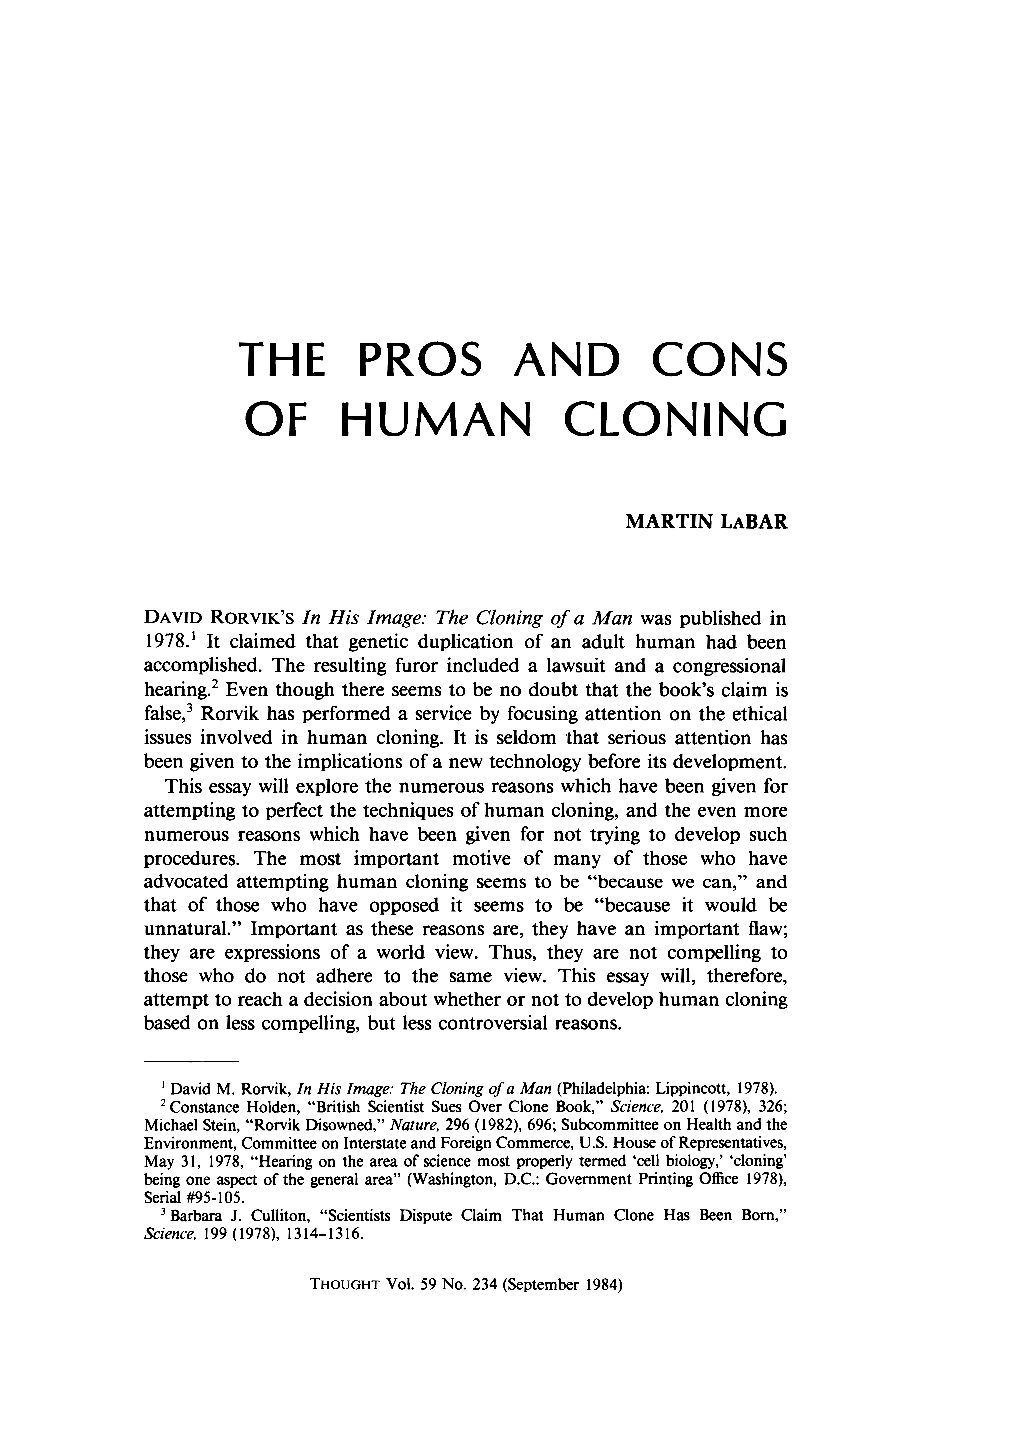 human cloning and congress essay